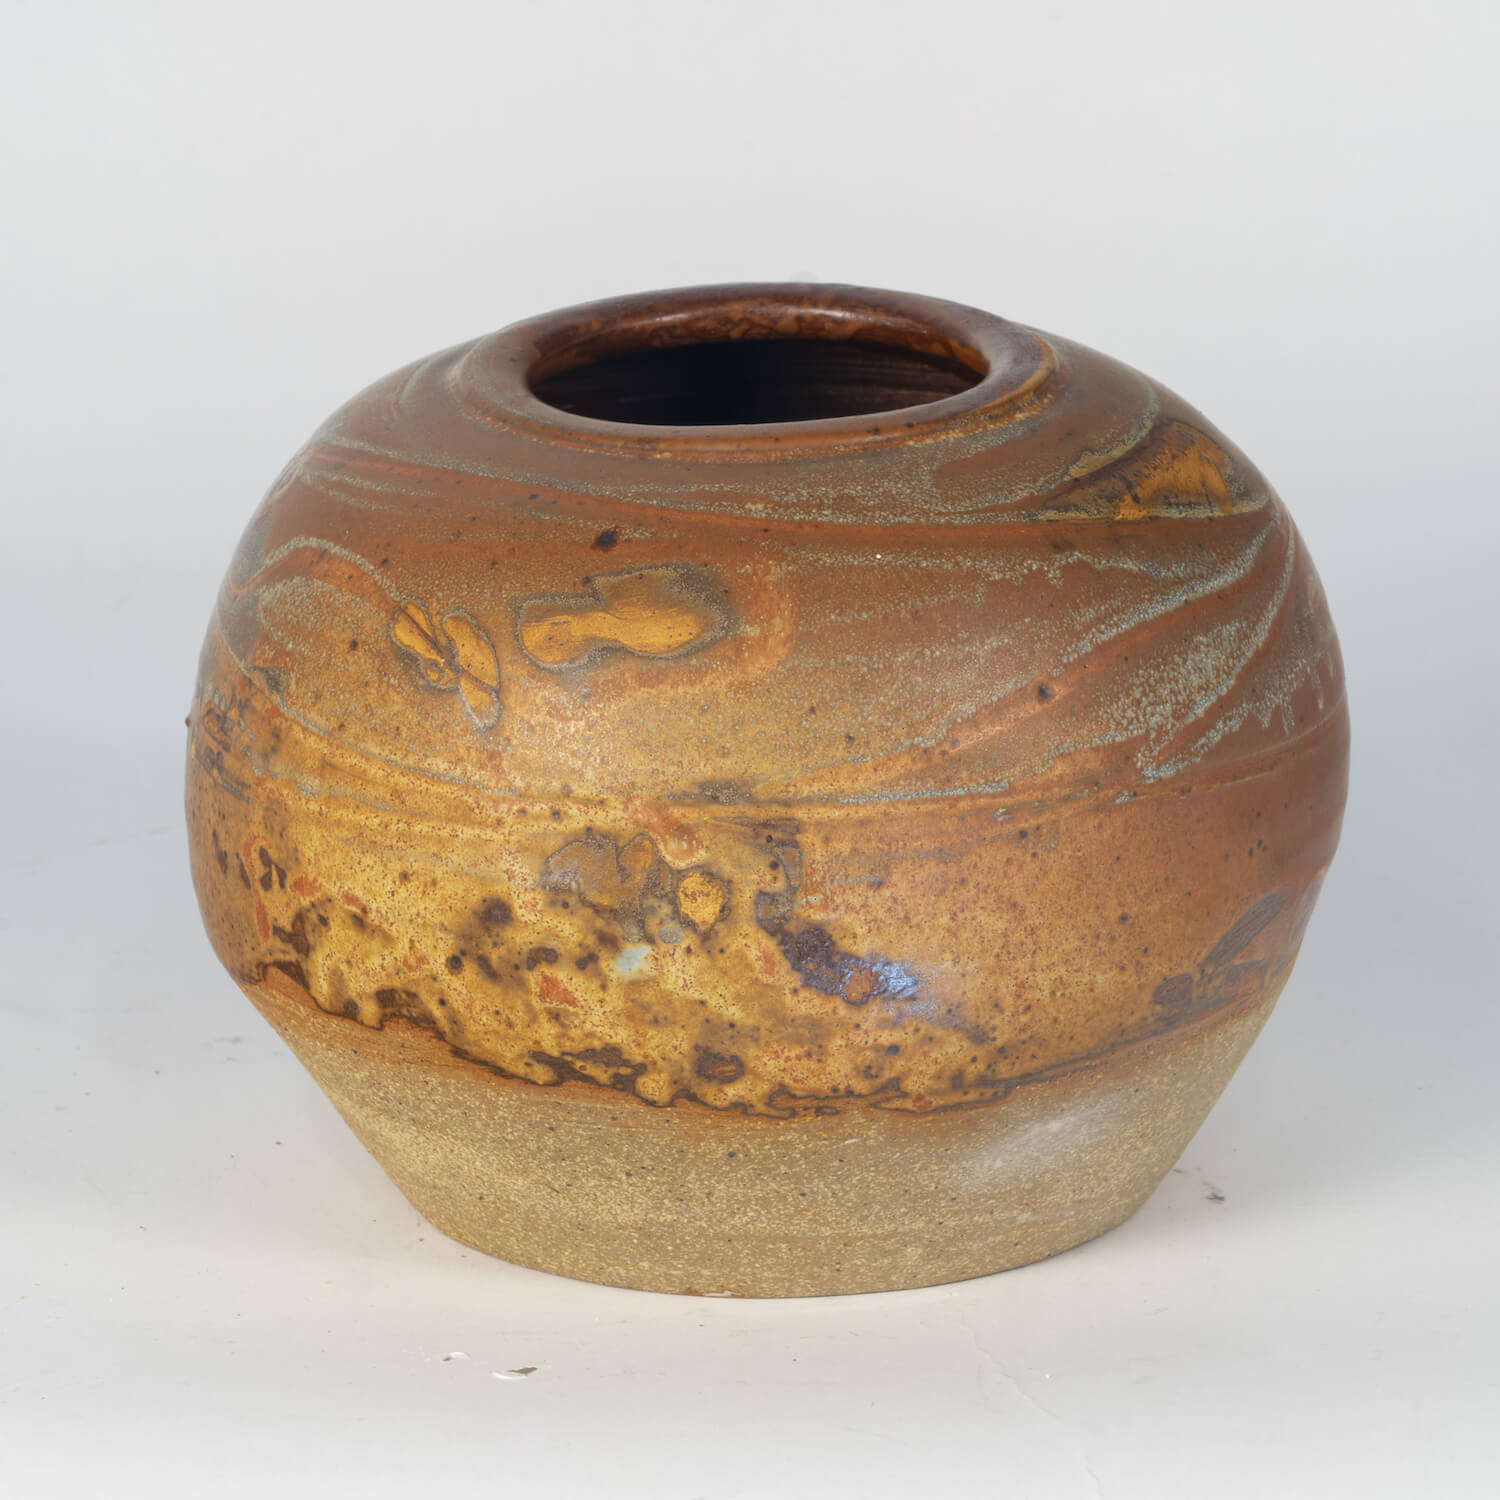 American Studio Pottery, Signed Illegibly